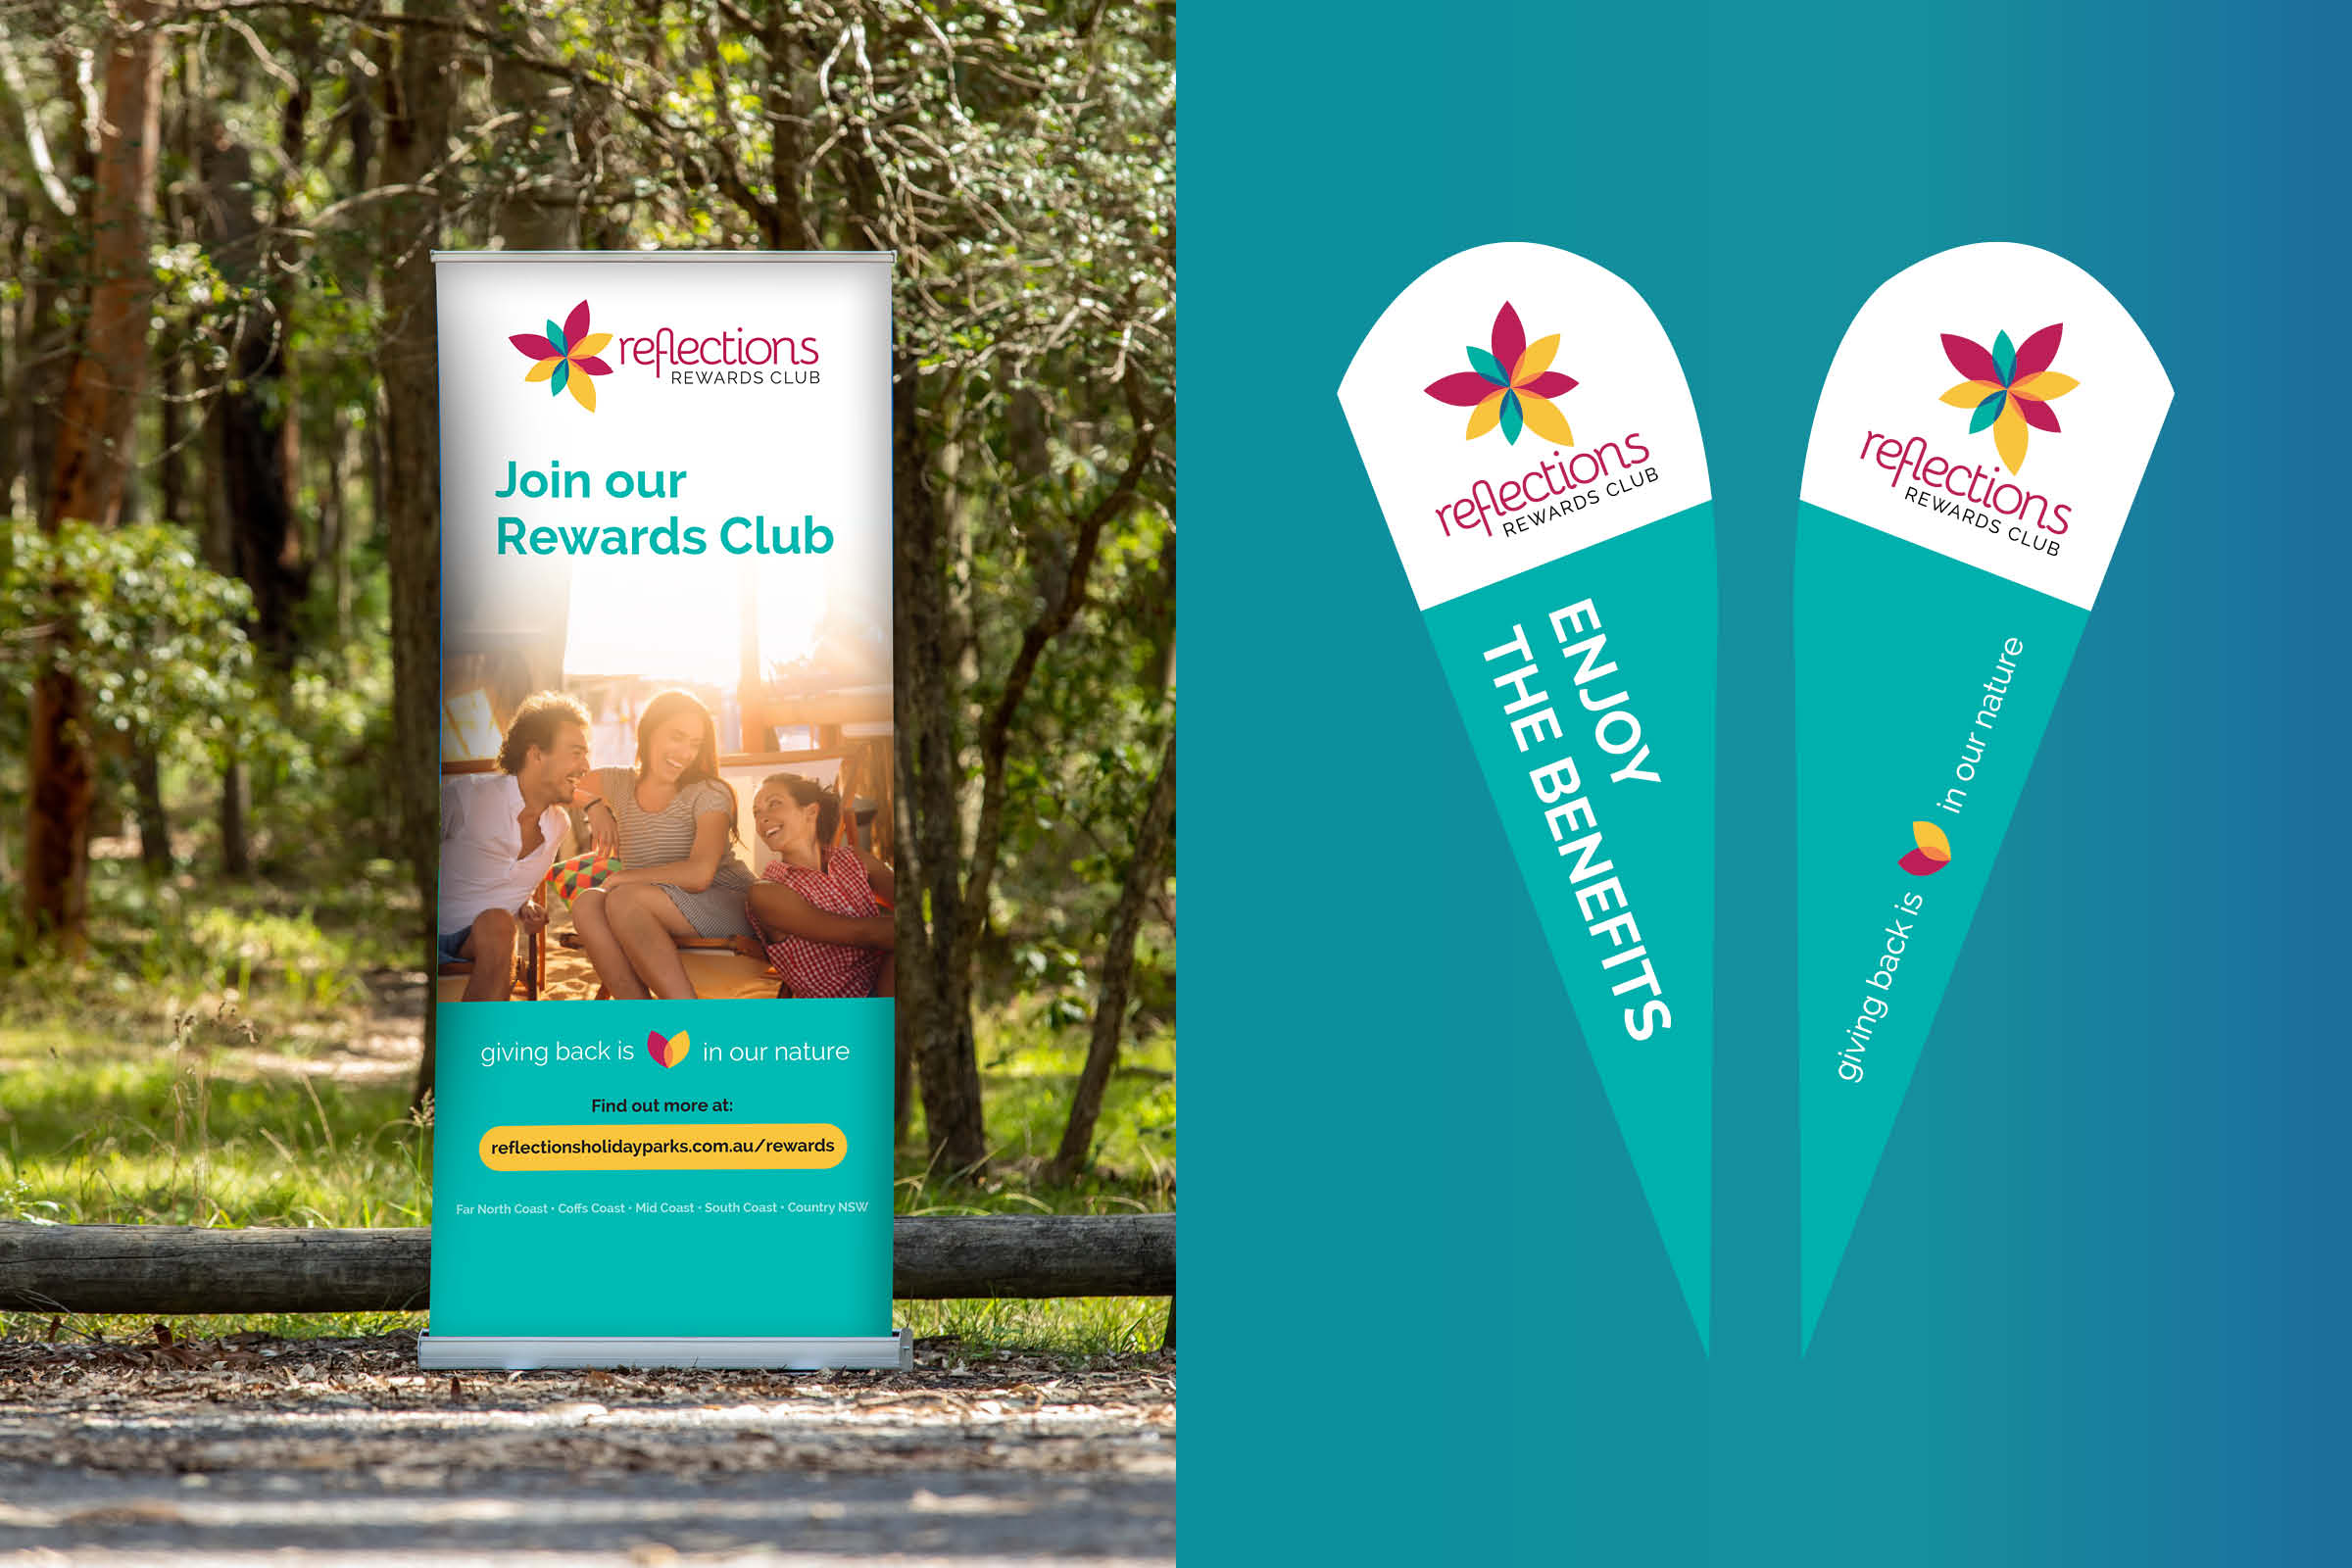 signage design including pull up banners and tear drop flags